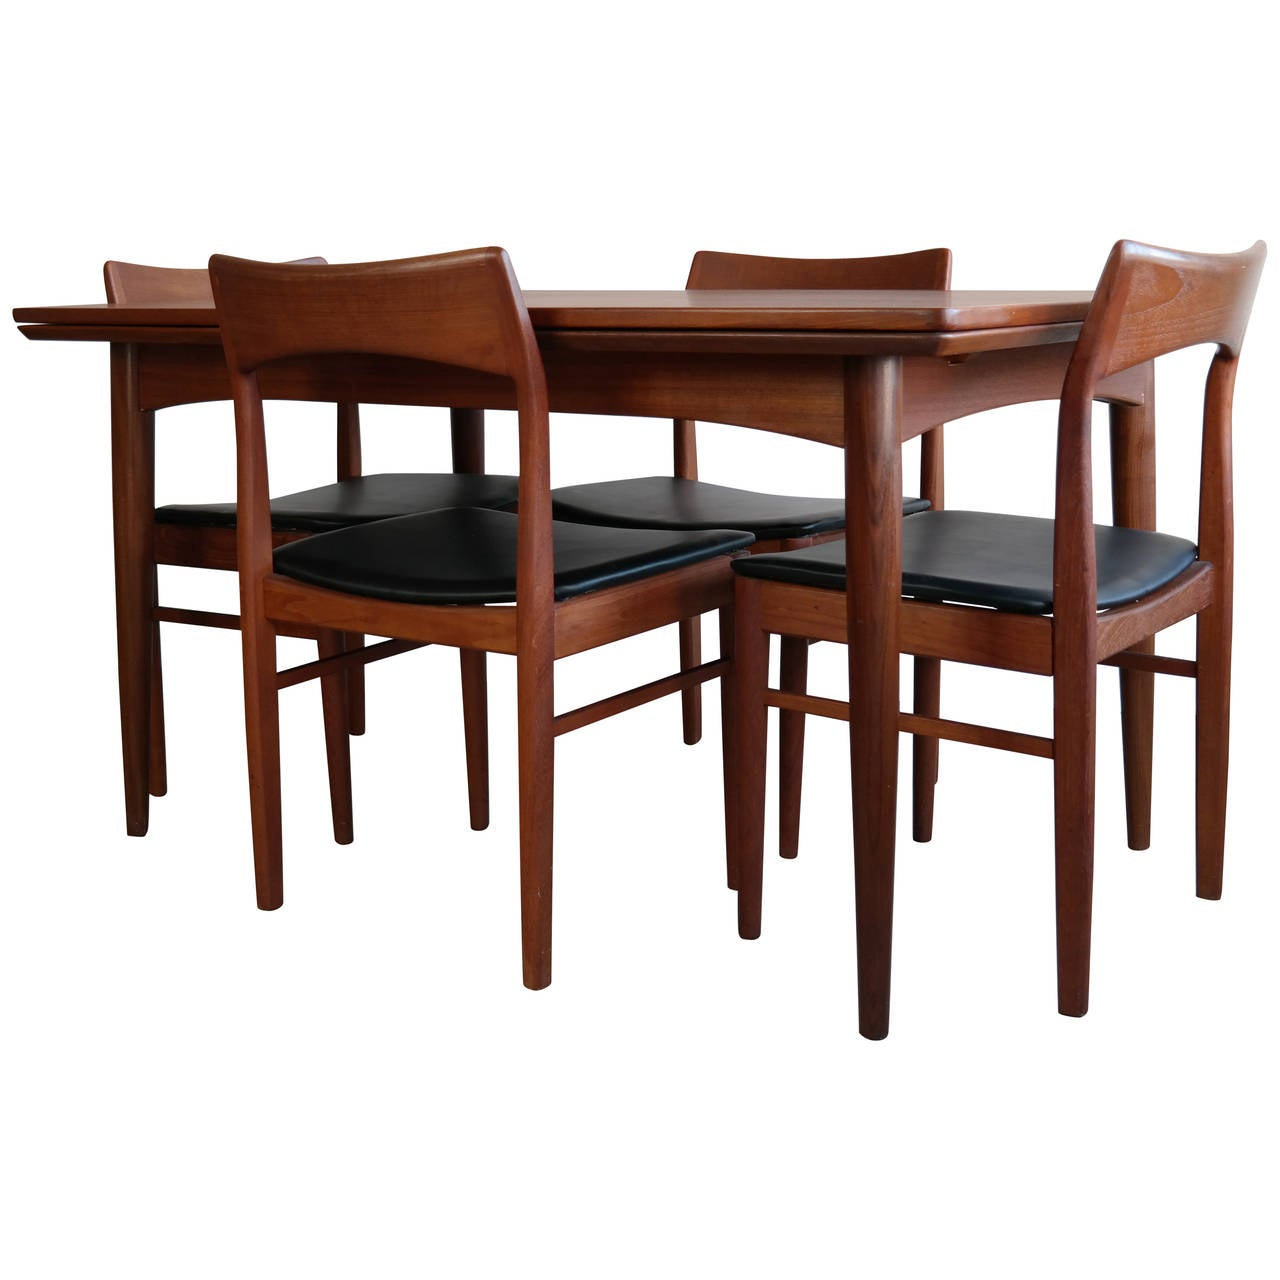 Danish modern dining set in teak at 1stdibs for Contemporary dining table sets